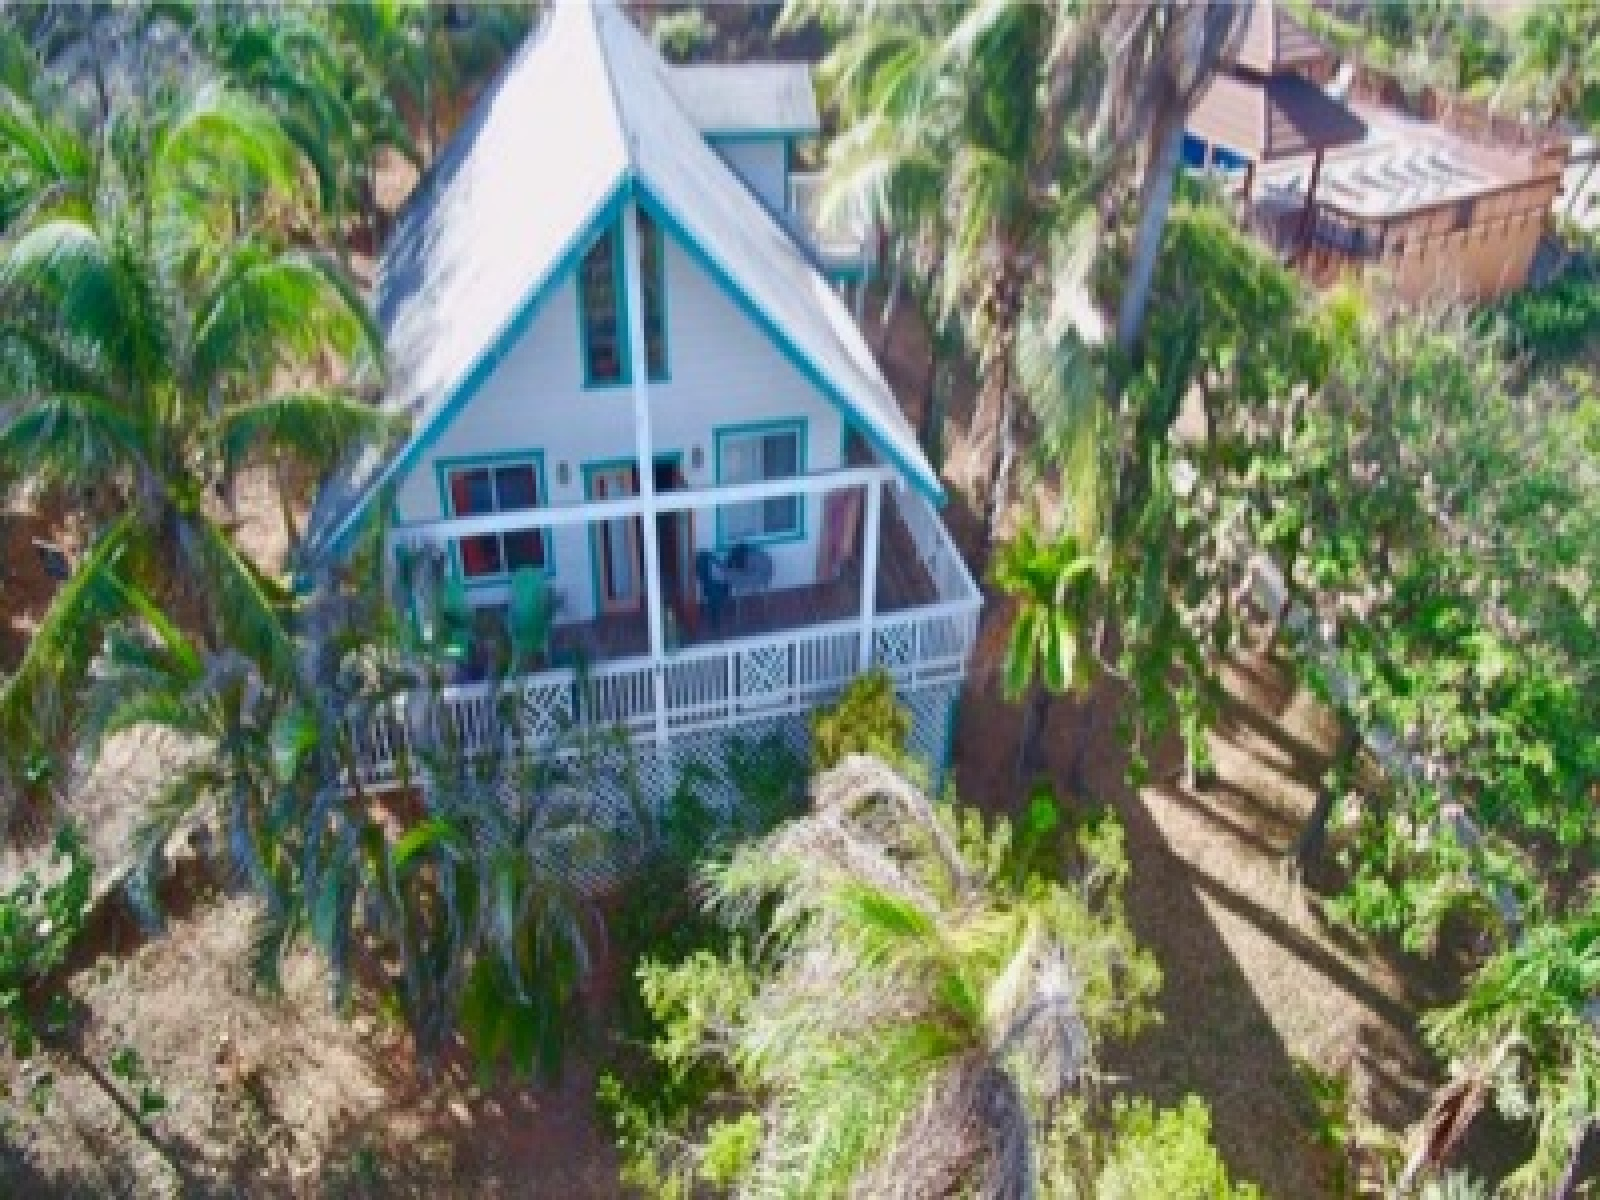 Surrounded by palms and flowers offers this tropical home privacy.